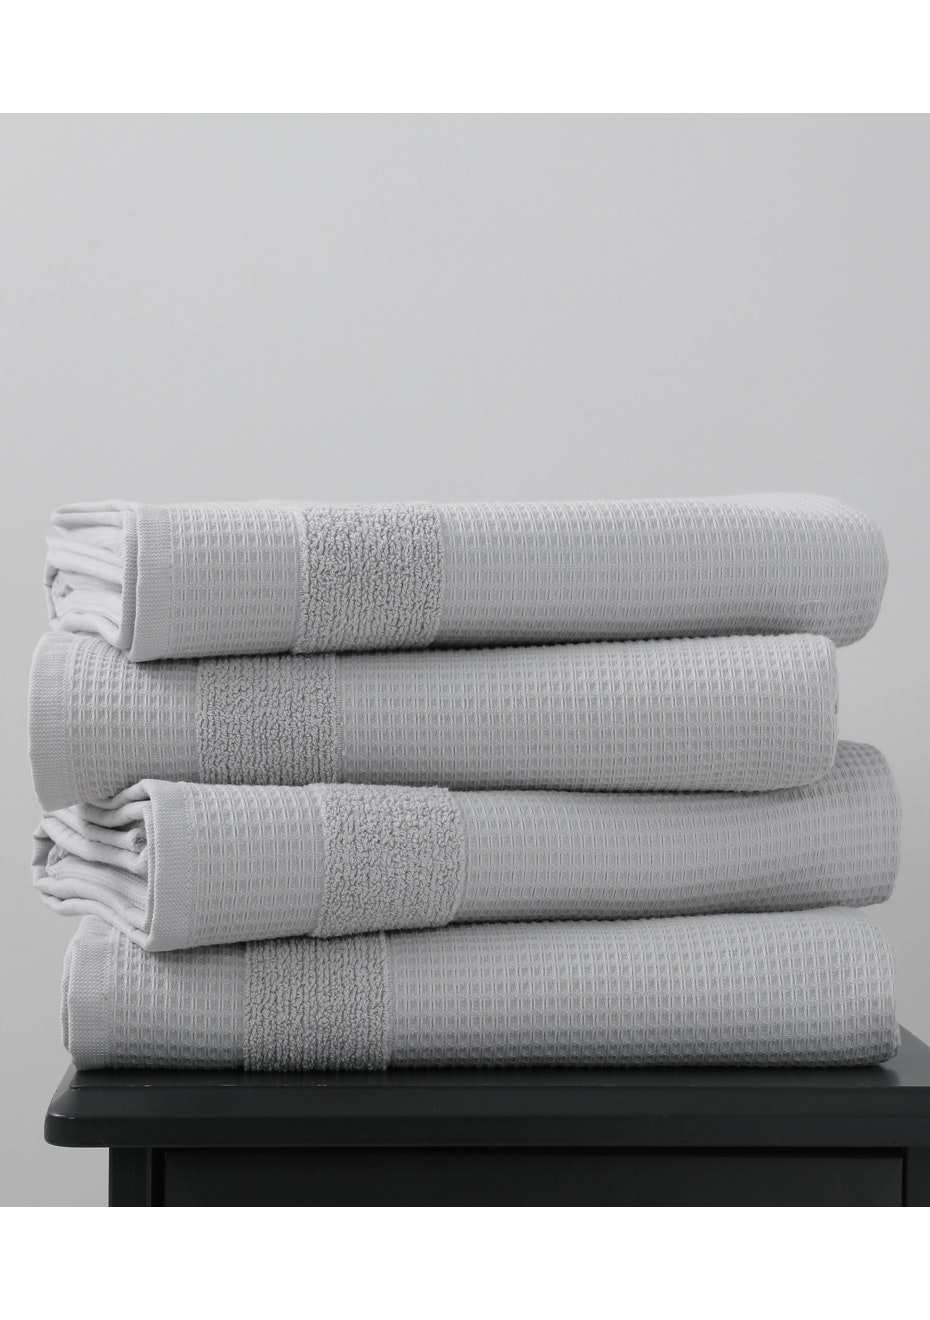 4 Pack Silver 600gsm Waffle Bath Towel